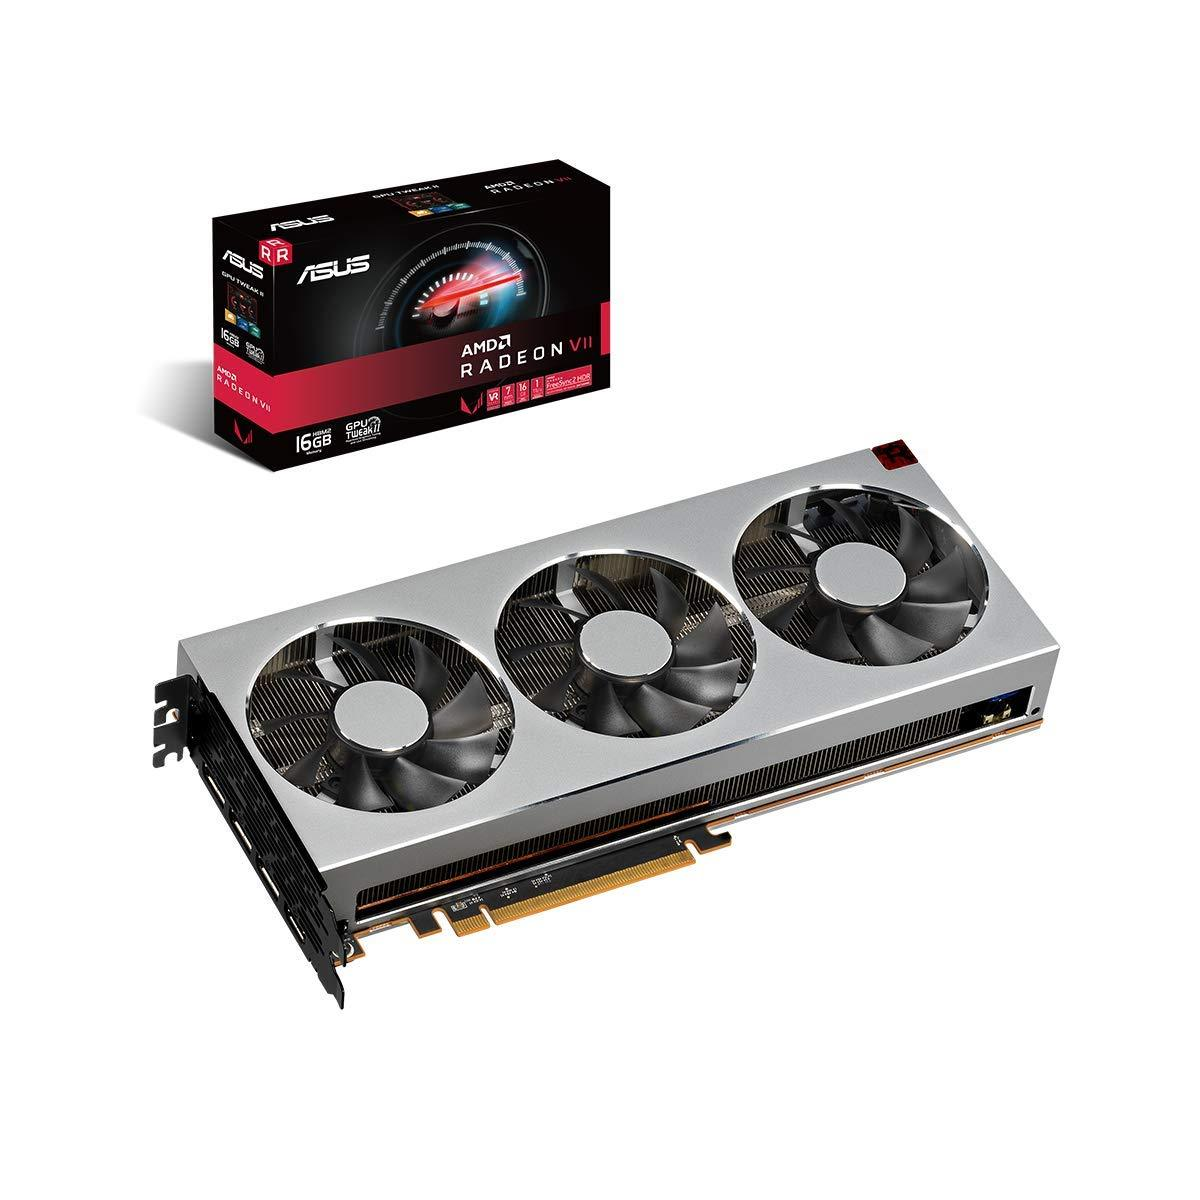 Asus Radeon VII 16GB GDDR6 PCI-E 3x4 Graphics Card